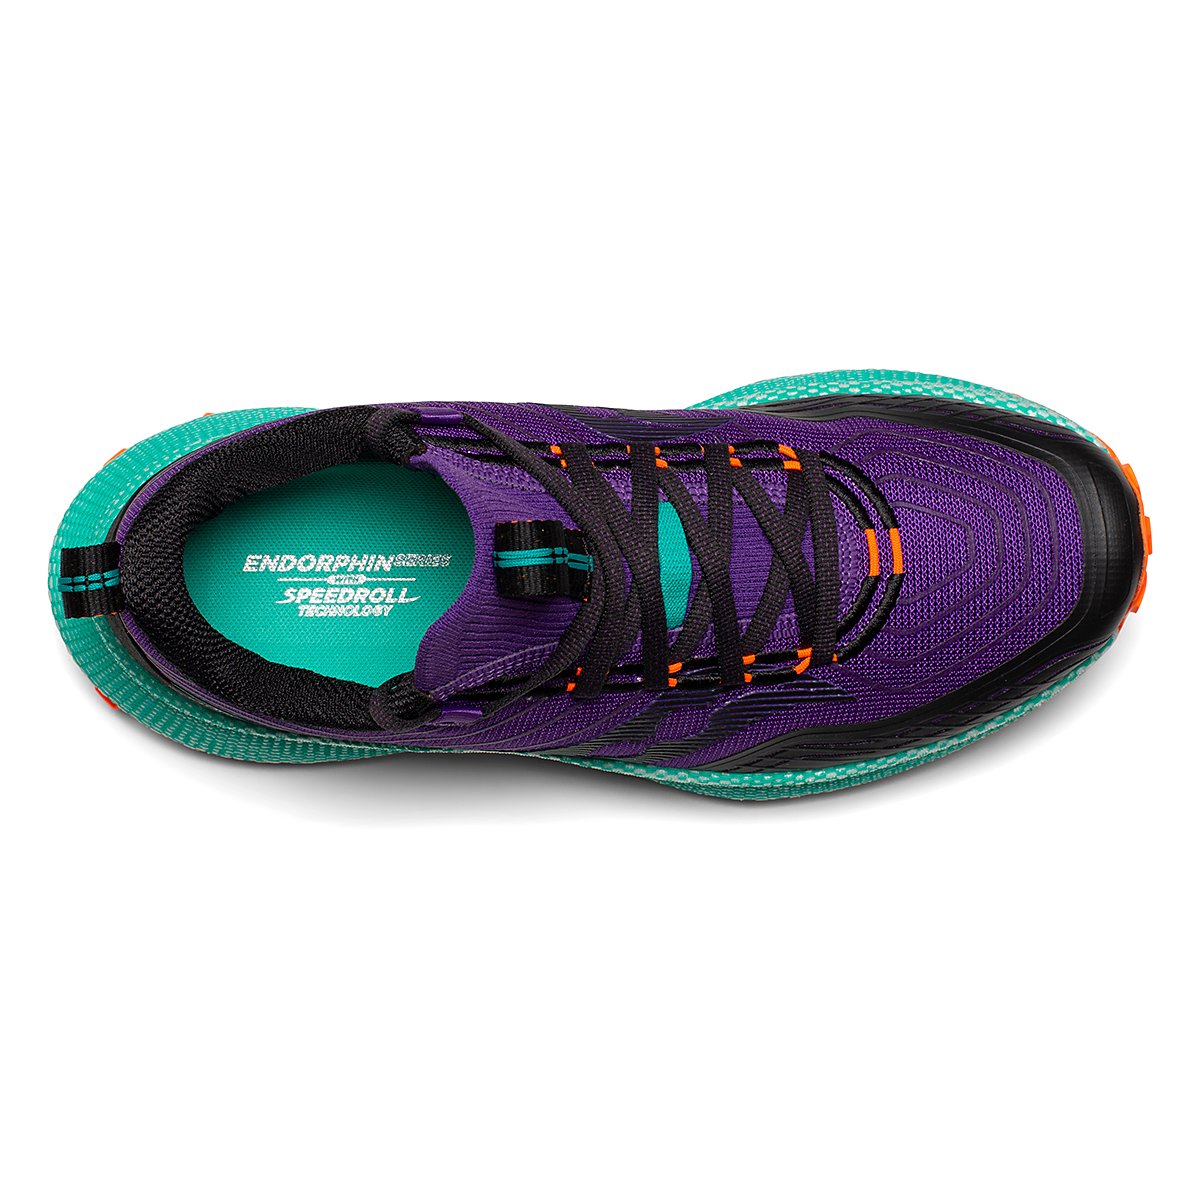 Women's Saucony Endorphin Trail Running Shoe - Color: Concord / Jade - Size: 5 - Width: Regular, Concord / Jade, large, image 3